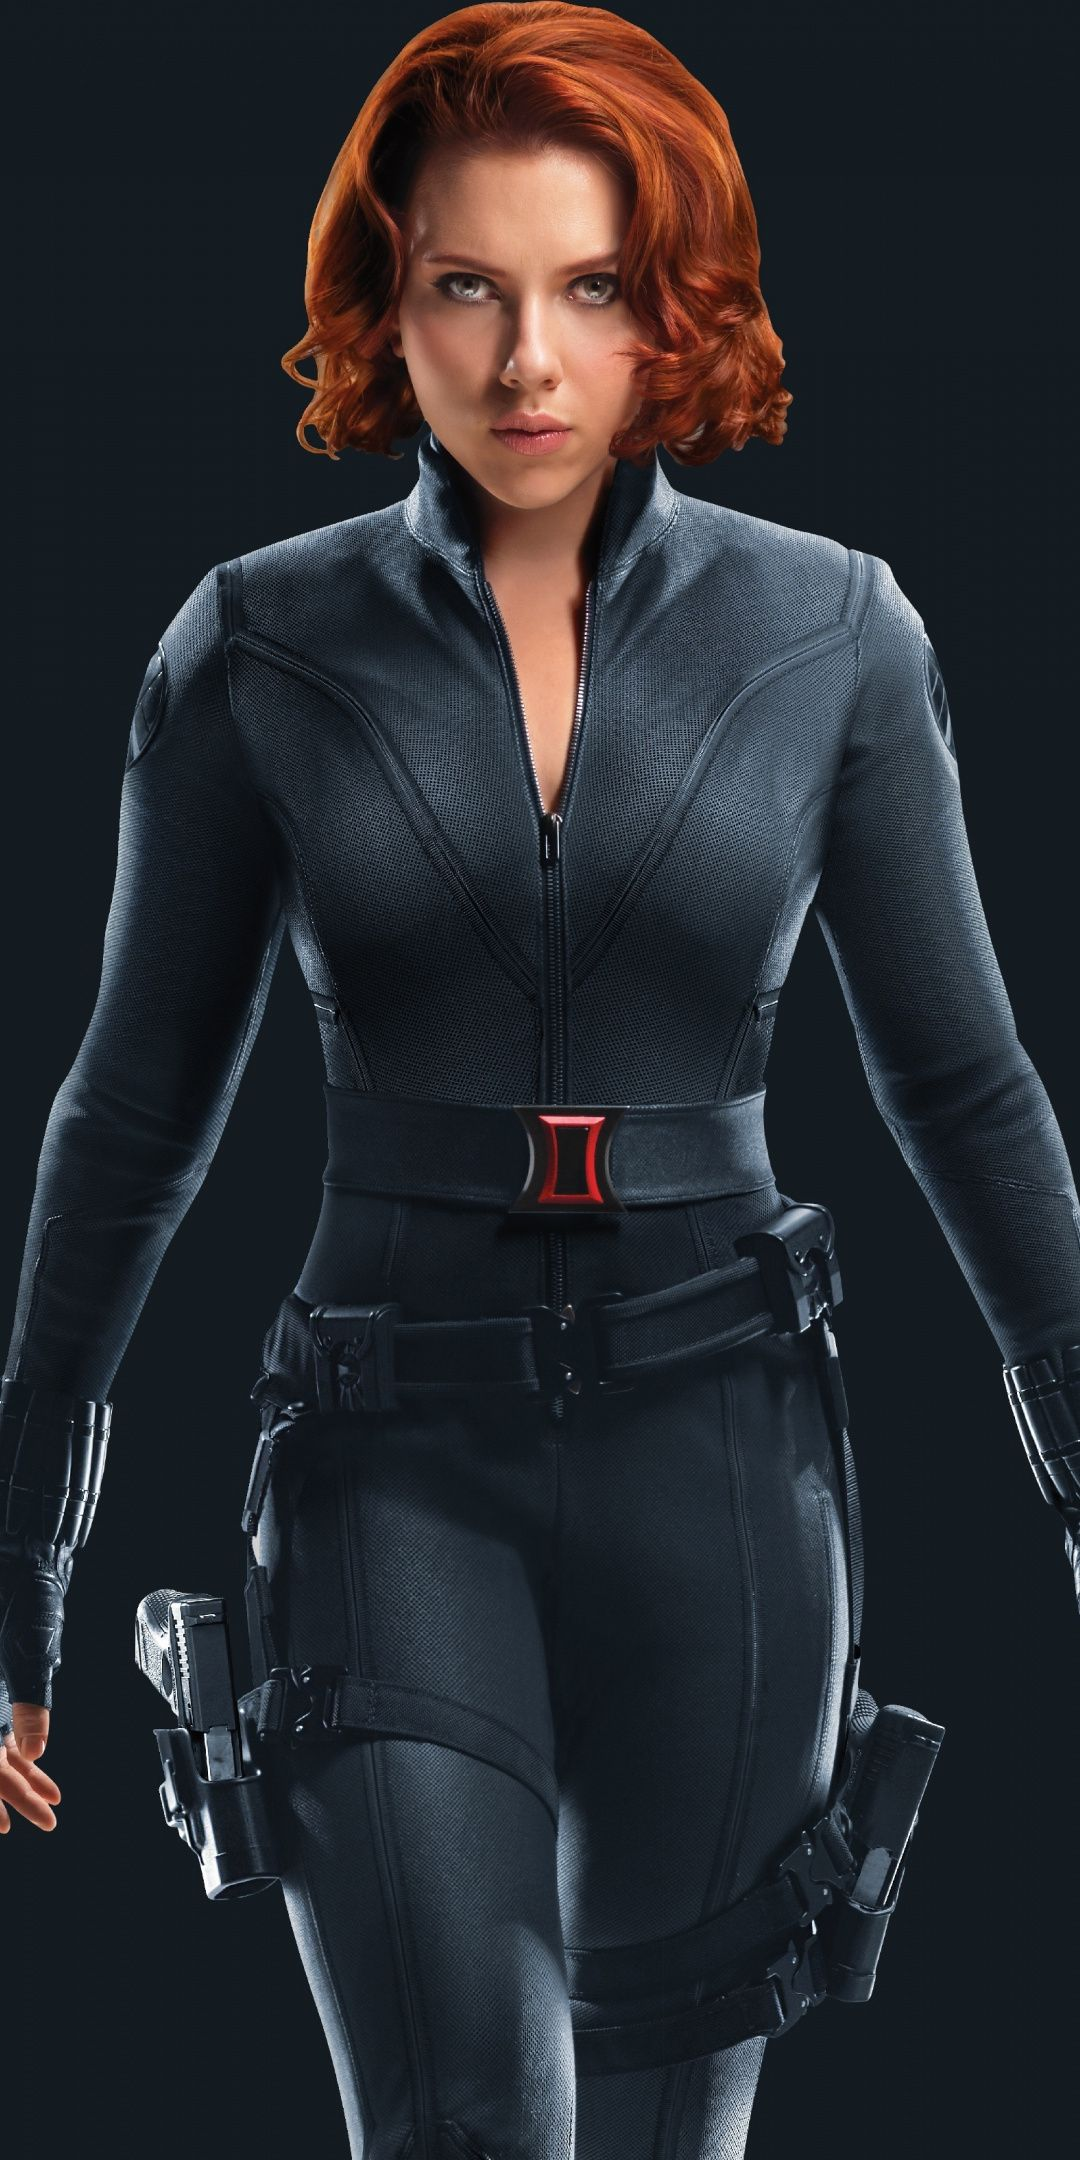 Dark, black widow, Scarlett Johansson, Marvel Comics, 1080x2160 wallpaper |  Black widow scarlett, Scarlett johansson marvel, Black widow marvel